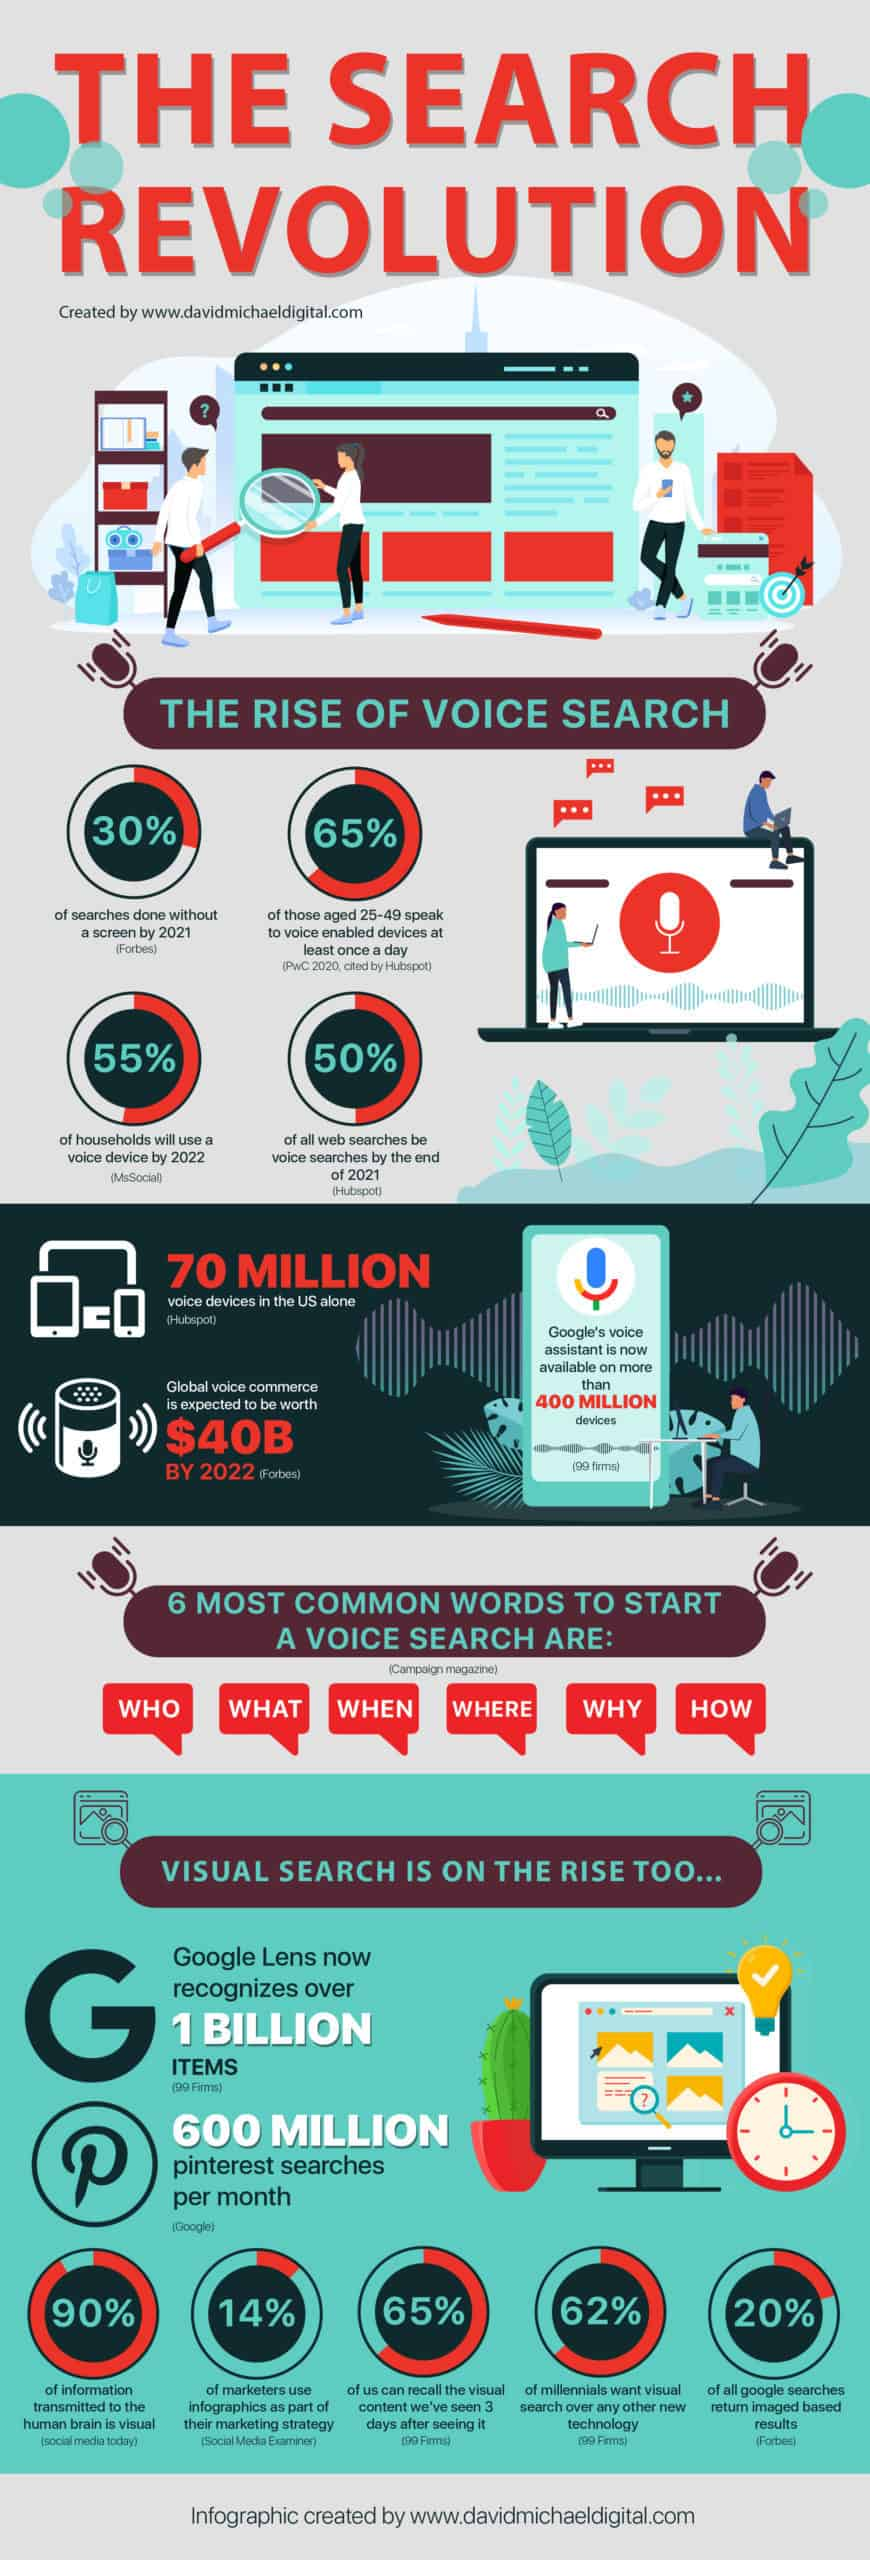 Infographic: The search engine revolution is coming